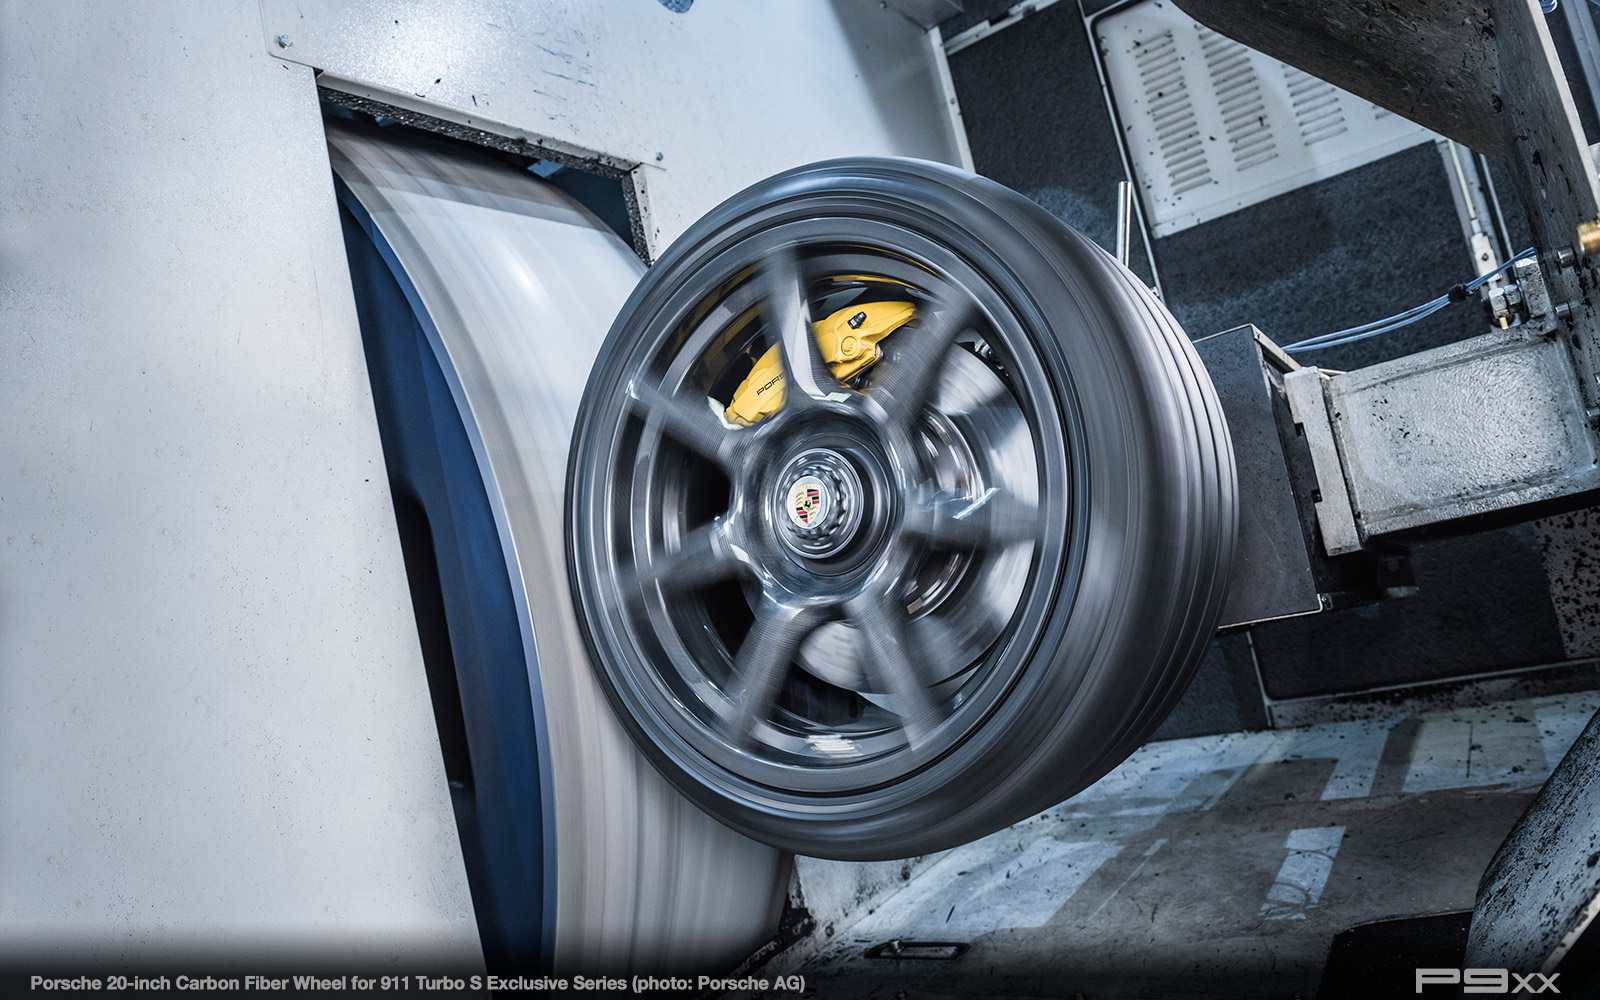 Porsche-911-Turbo-S-Exclusive-Series-Carbon-Fiber-Wheel-513